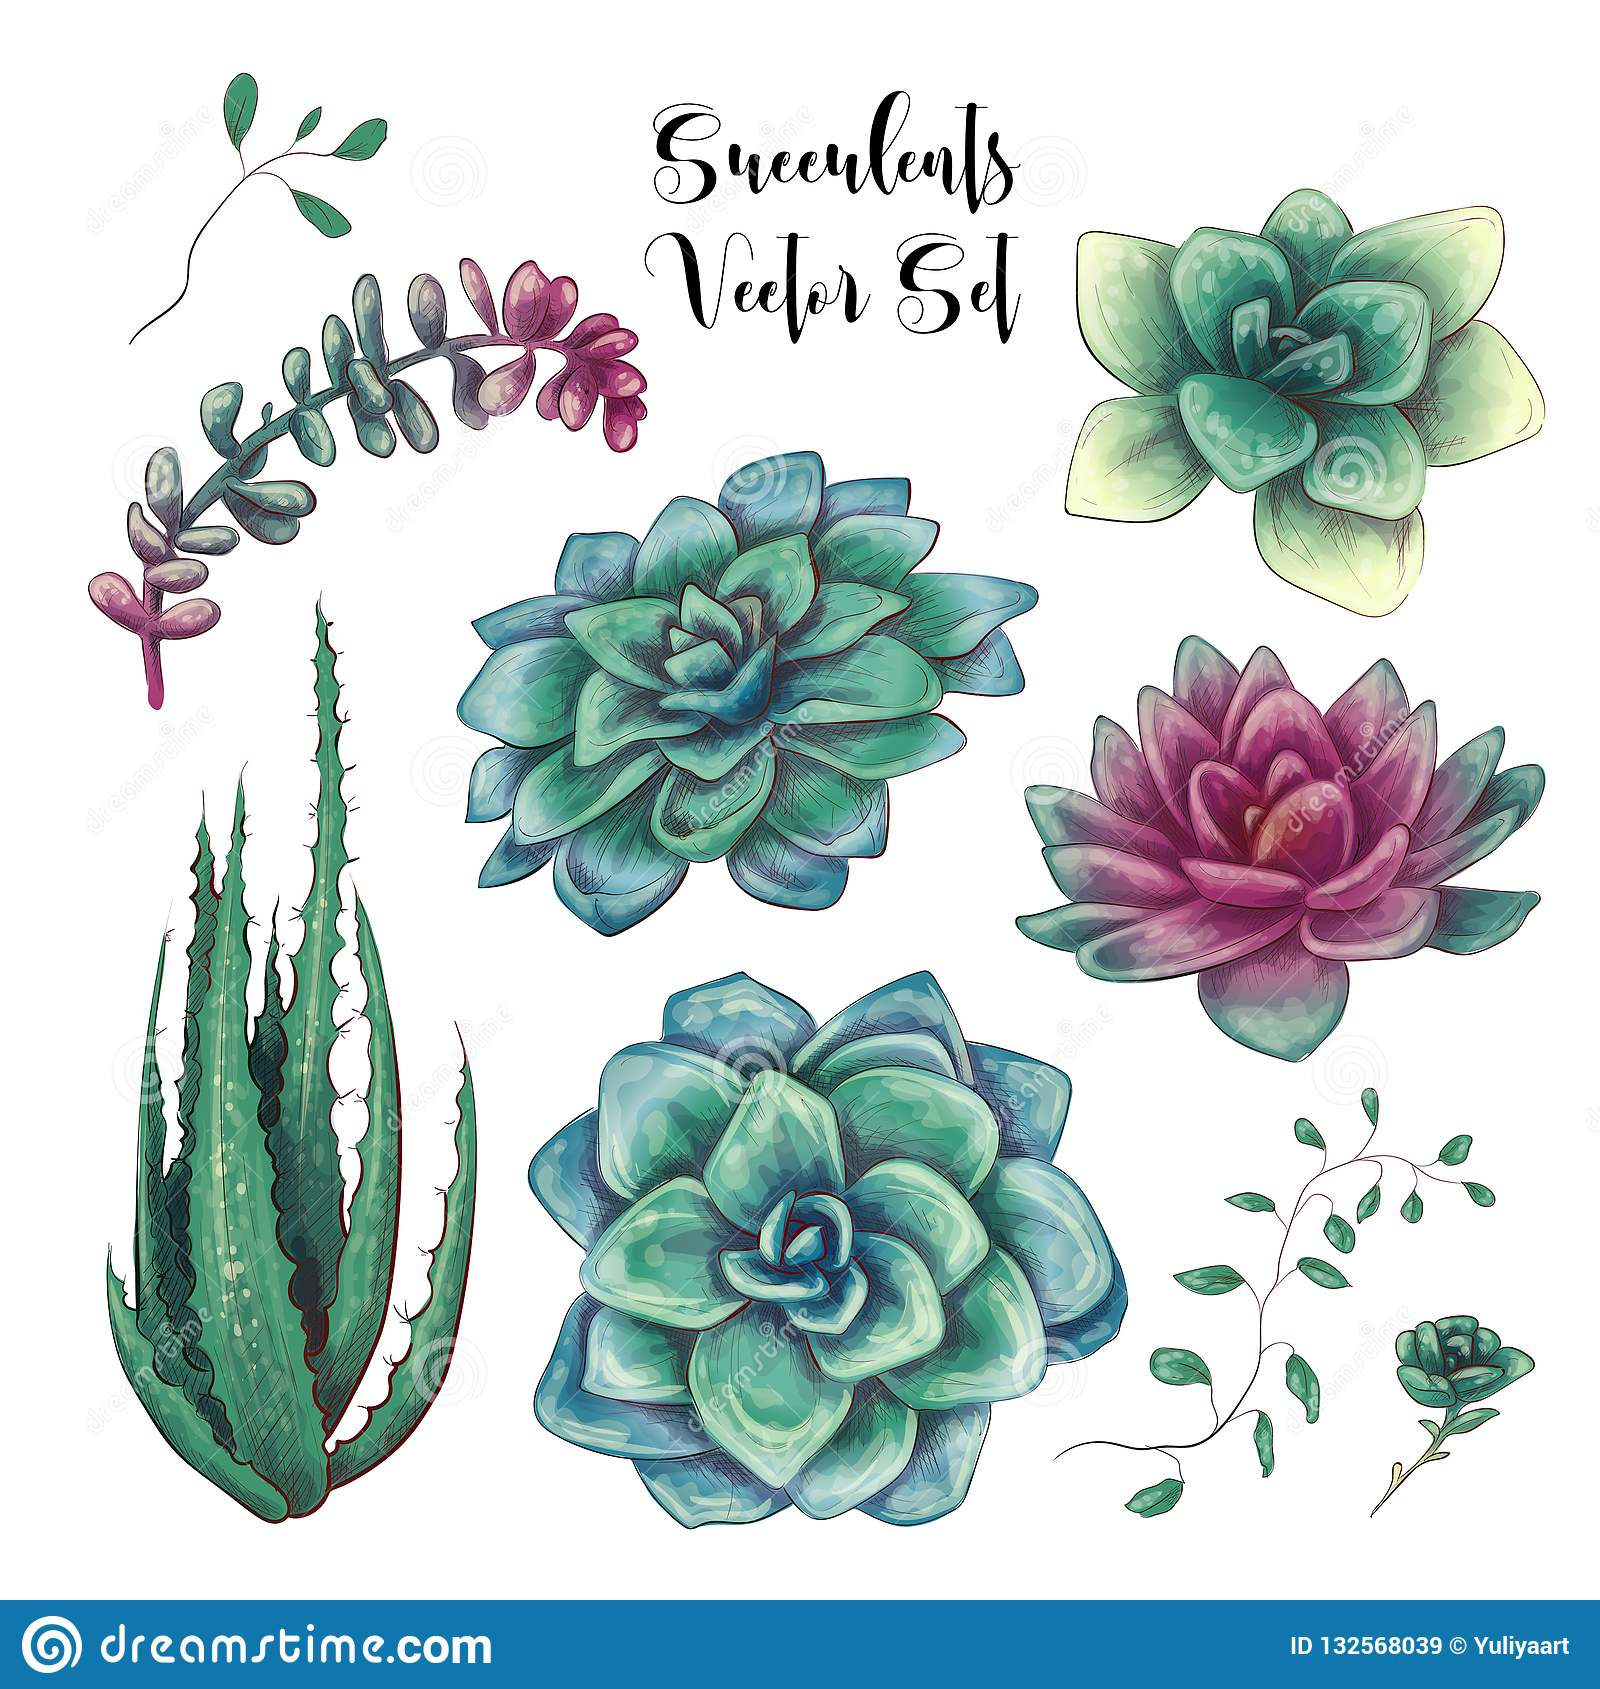 Green Colorful Succulent Bouquets Vector Design Objects Stock Illustration Illustration Of Invitation Assortment 132568039